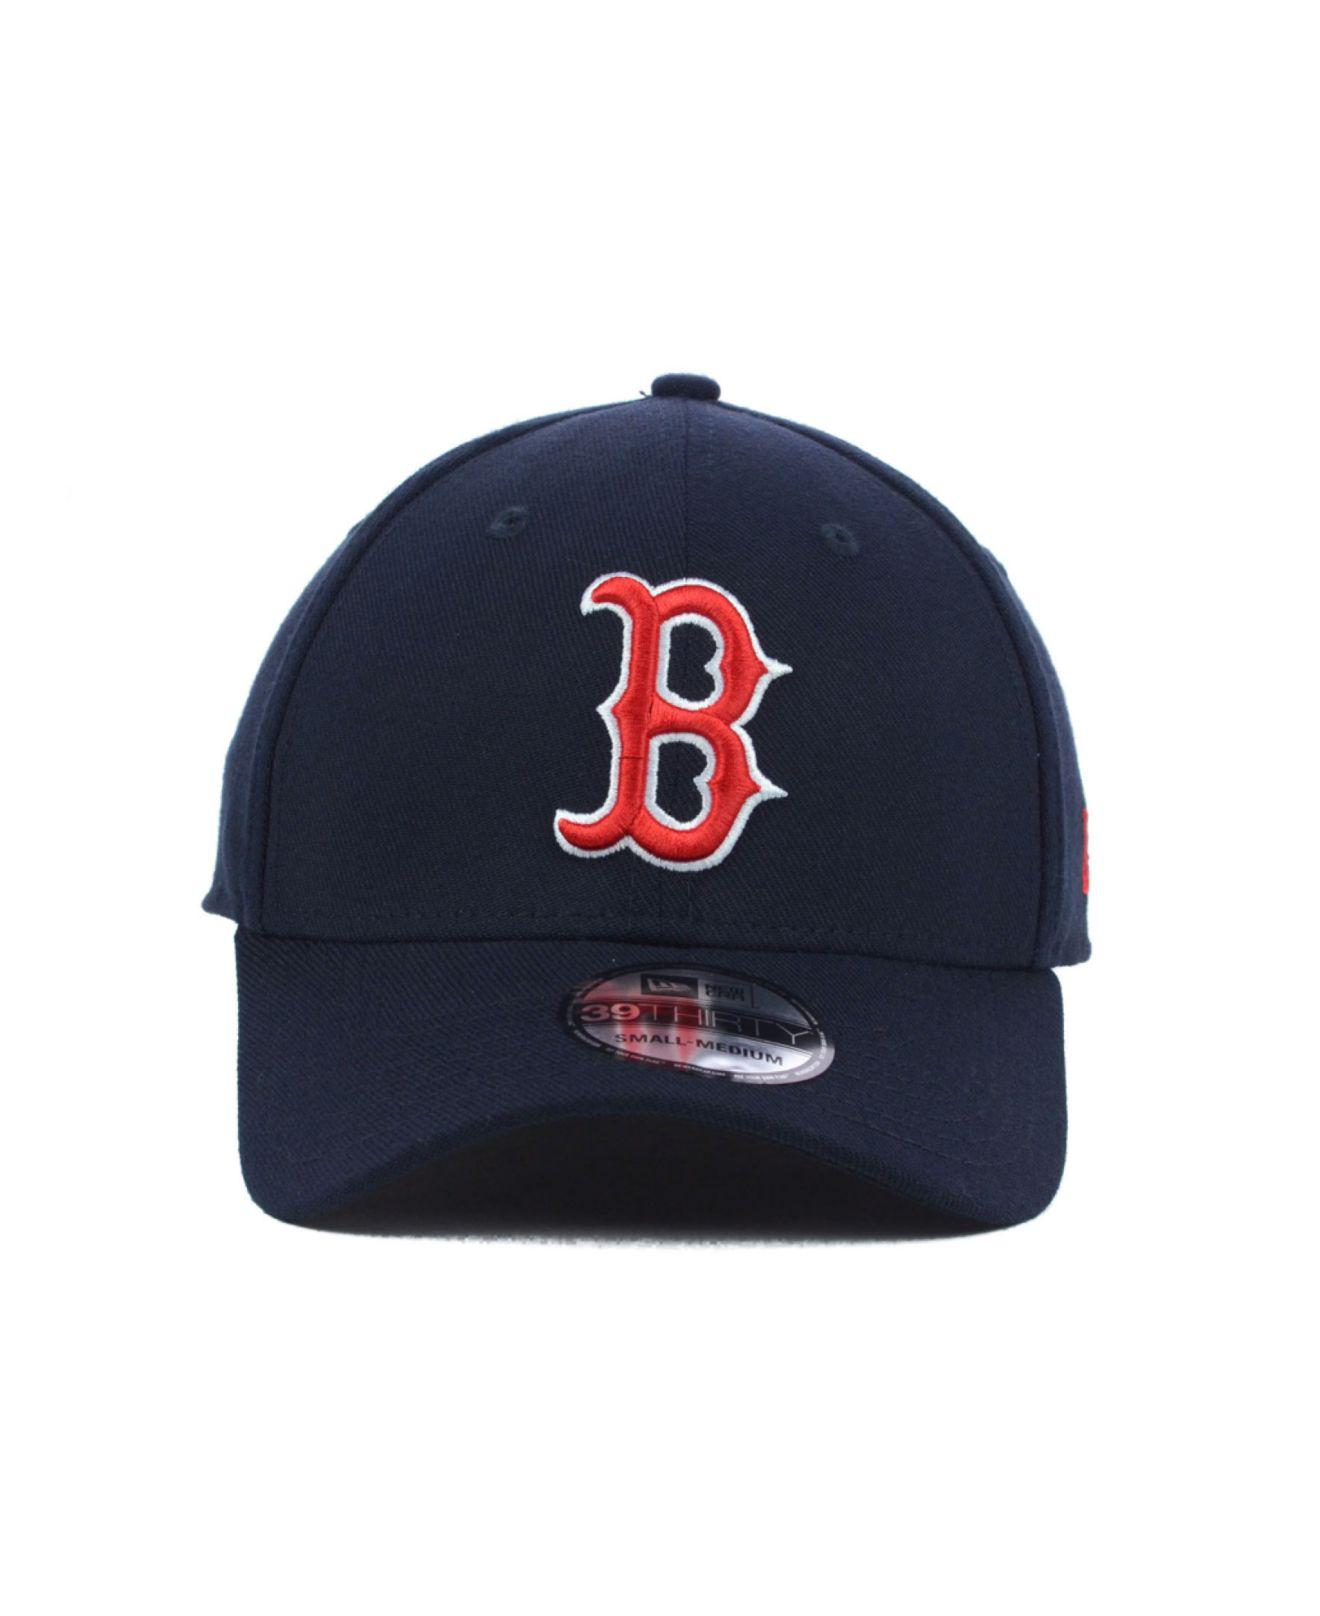 newest 6d98d 0419f ... Mlb Team Classic 39thirty Cap for Men - Lyst. View fullscreen